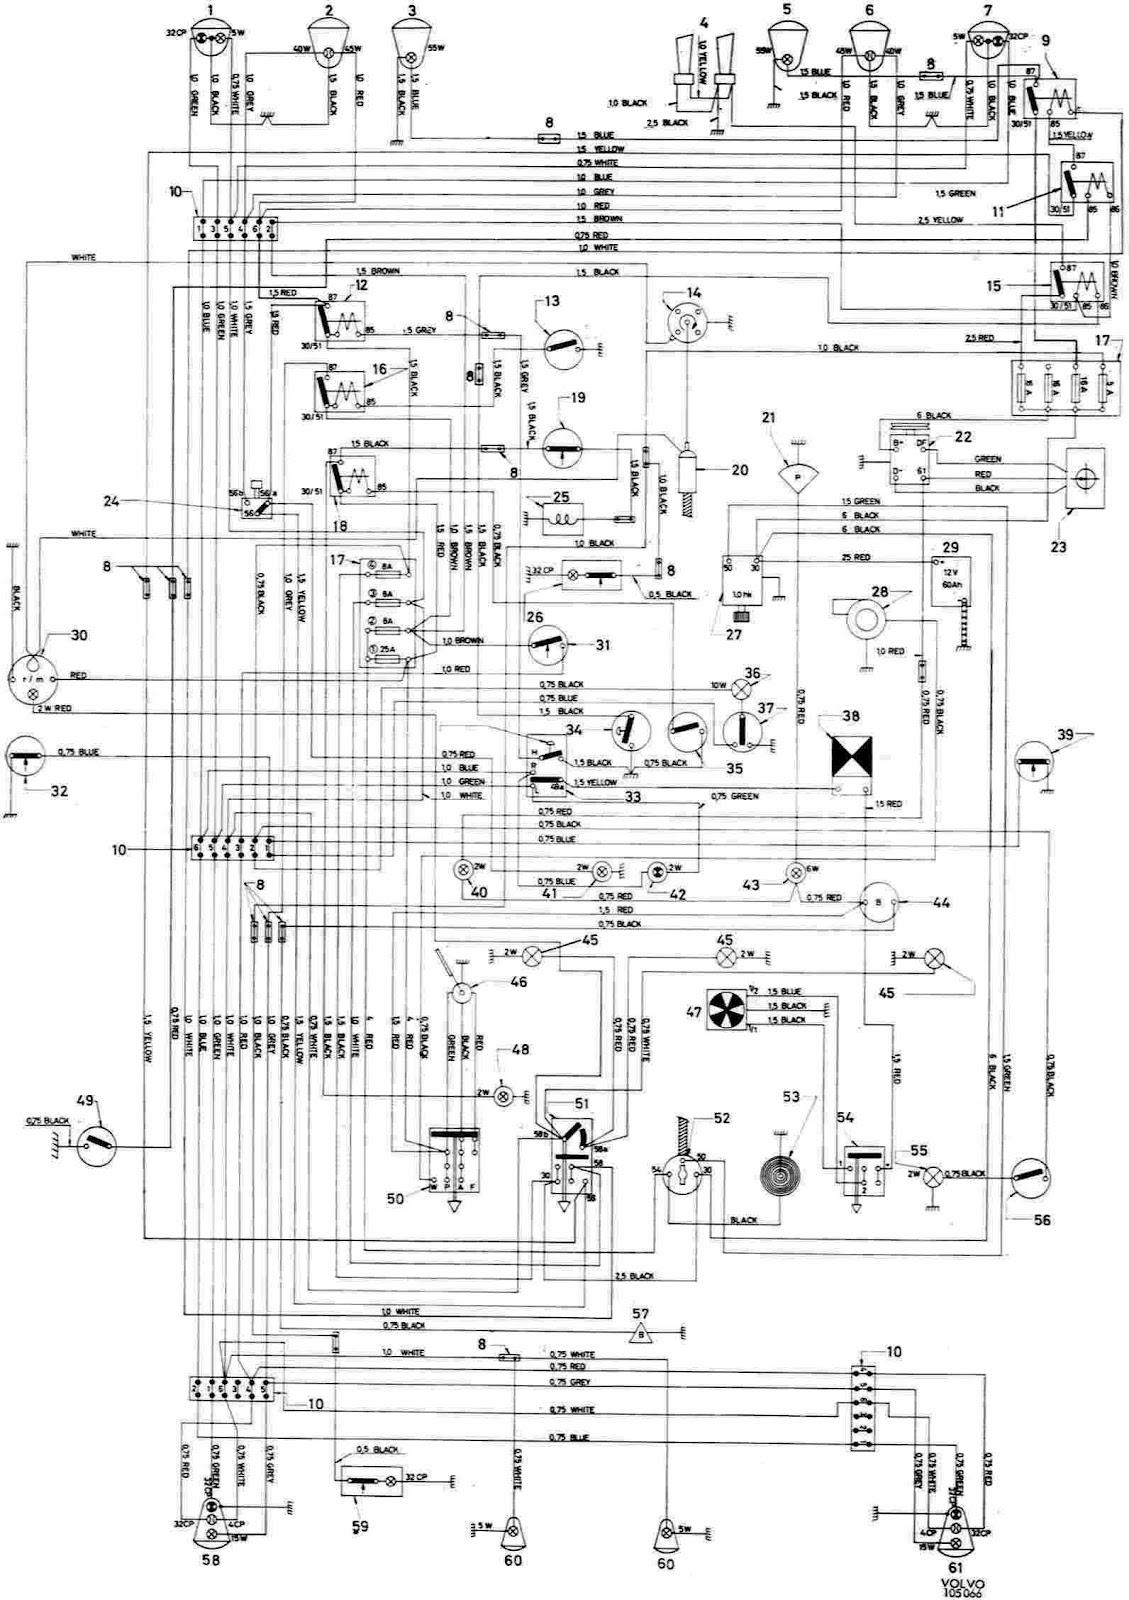 Volvo+123+GT+Complete+Wiring+Diagram hu 613 wiring diagram boat wiring diagram \u2022 wiring diagrams j e46 o2 sensor wiring diagram at crackthecode.co